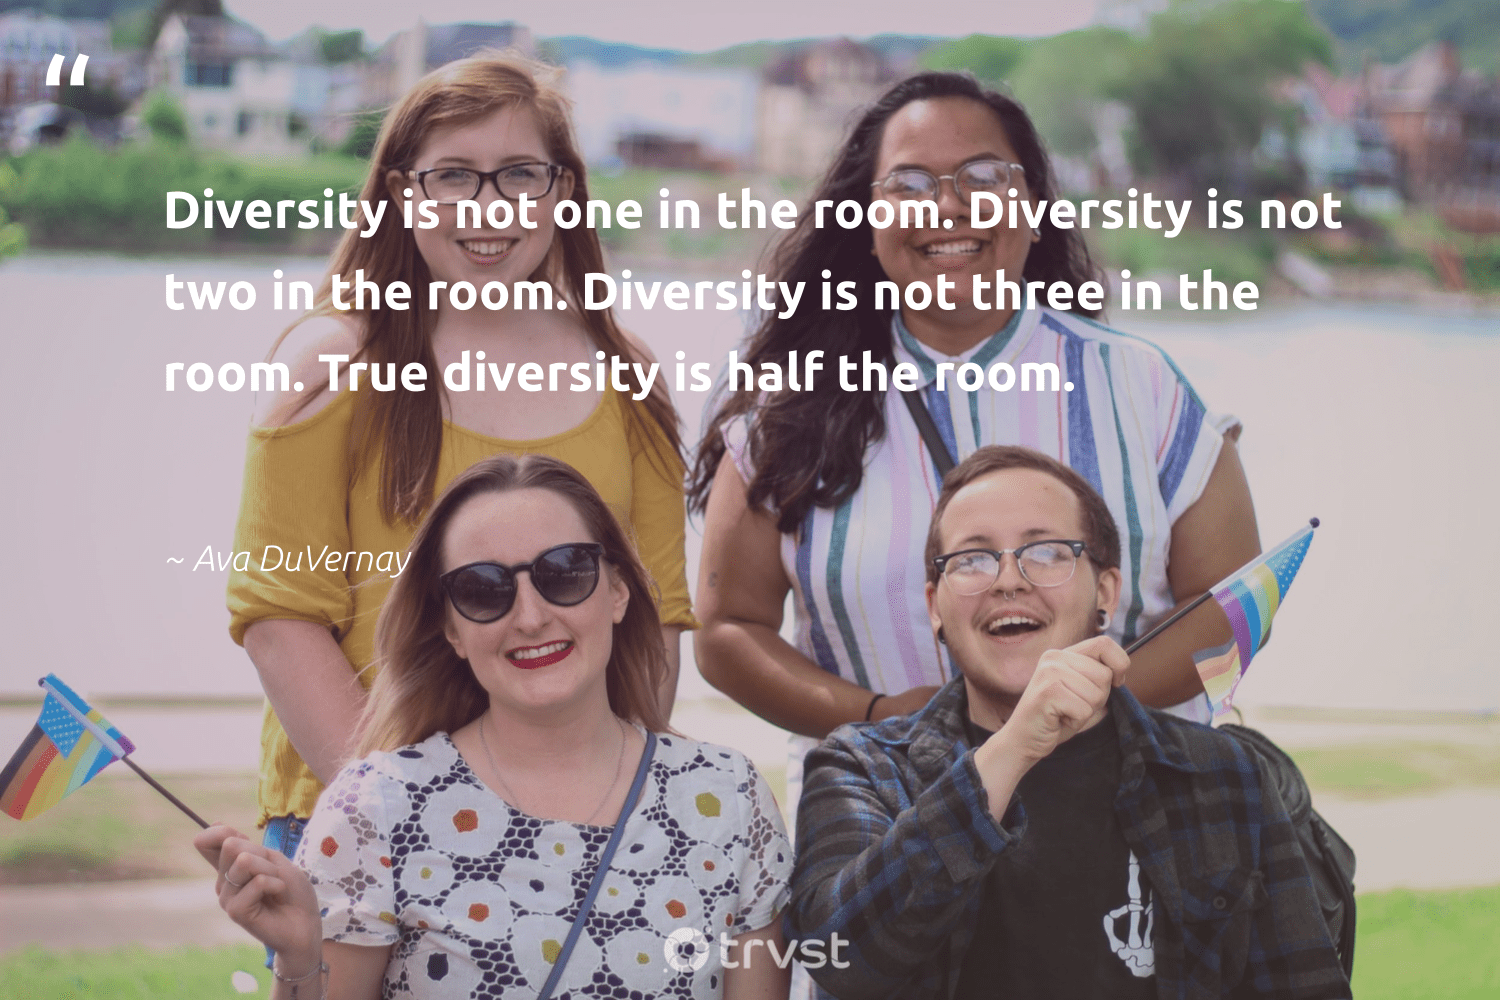 """Diversity is not one in the room. Diversity is not two in the room. Diversity is not three in the room. True diversity is half the room.""  - Ava DuVernay #trvst #quotes #diversity #representationmatters #discrimination #makeadifference #bethechange #planetearthfirst #inclusion #weareallone #socialgood #socialchange"